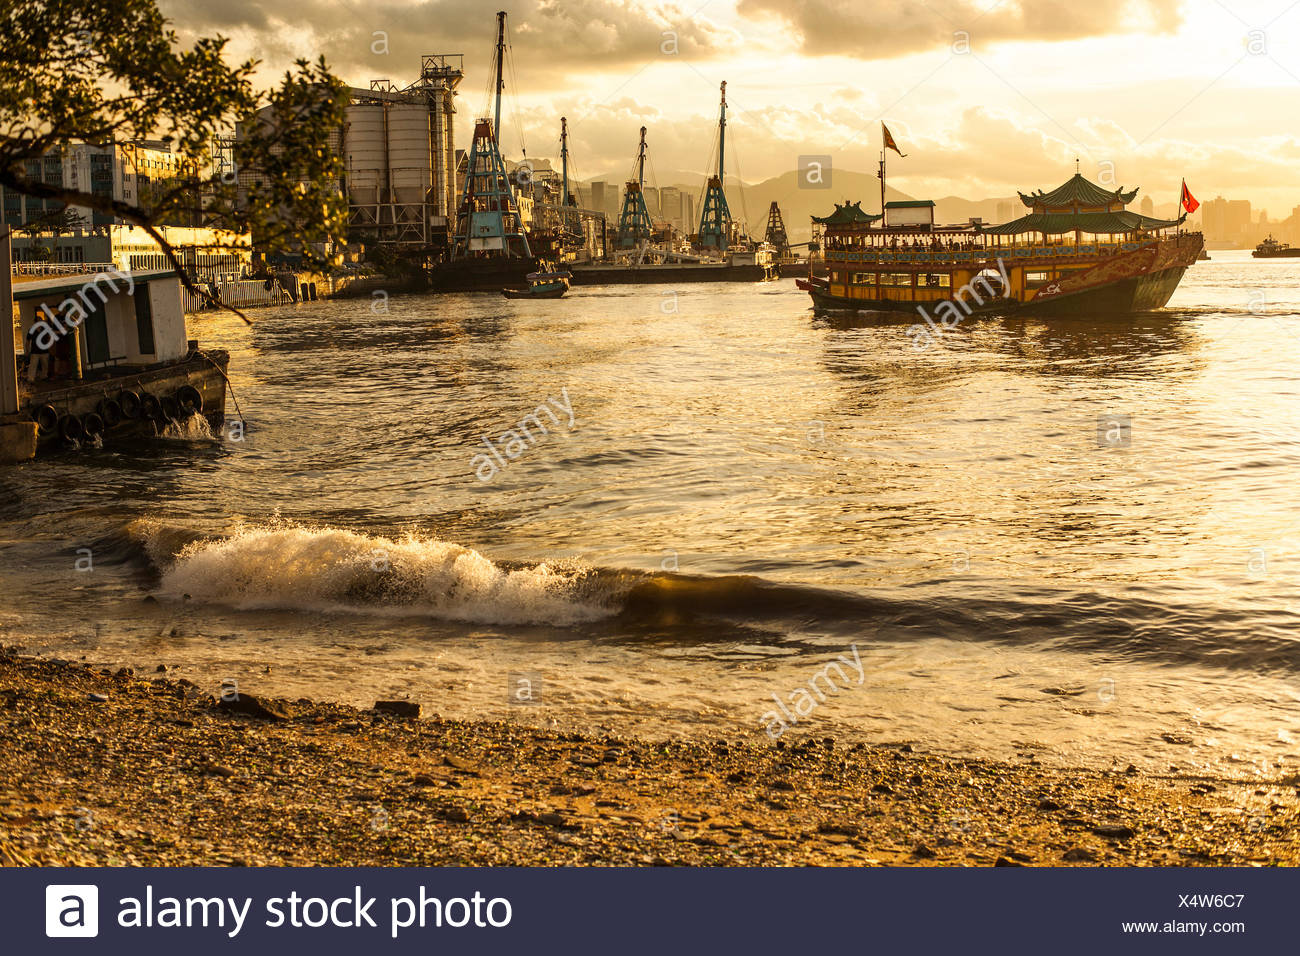 Chinese junk boat at sunset - Stock Image